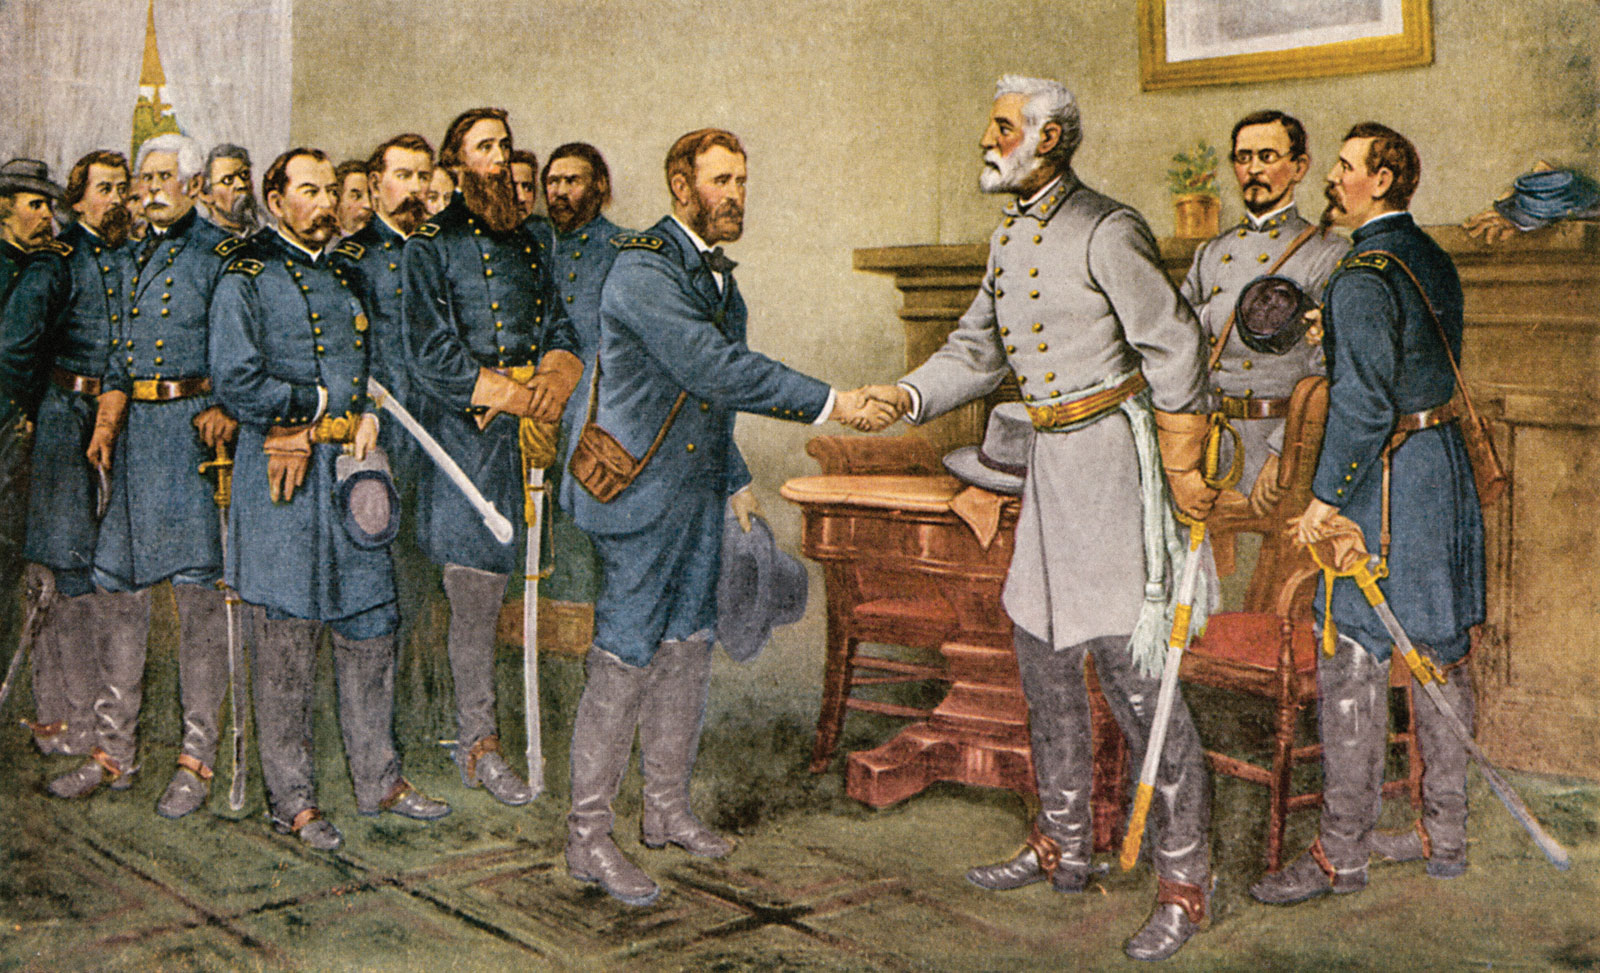 Men of Honor - Genral Lee surrenders to Grant